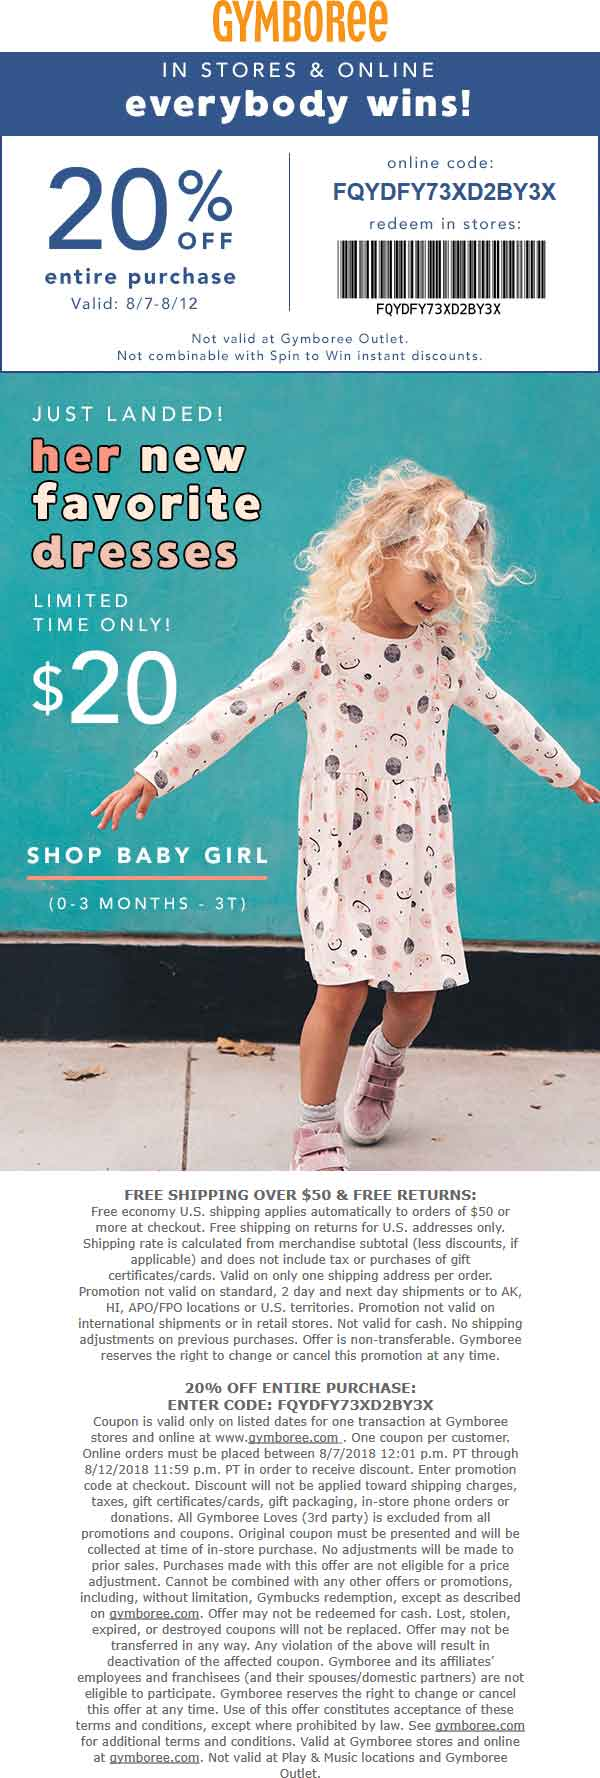 Gymboree.com Promo Coupon 20% off at Gymboree, or online via promo code FQYDFY73XD2BY3X